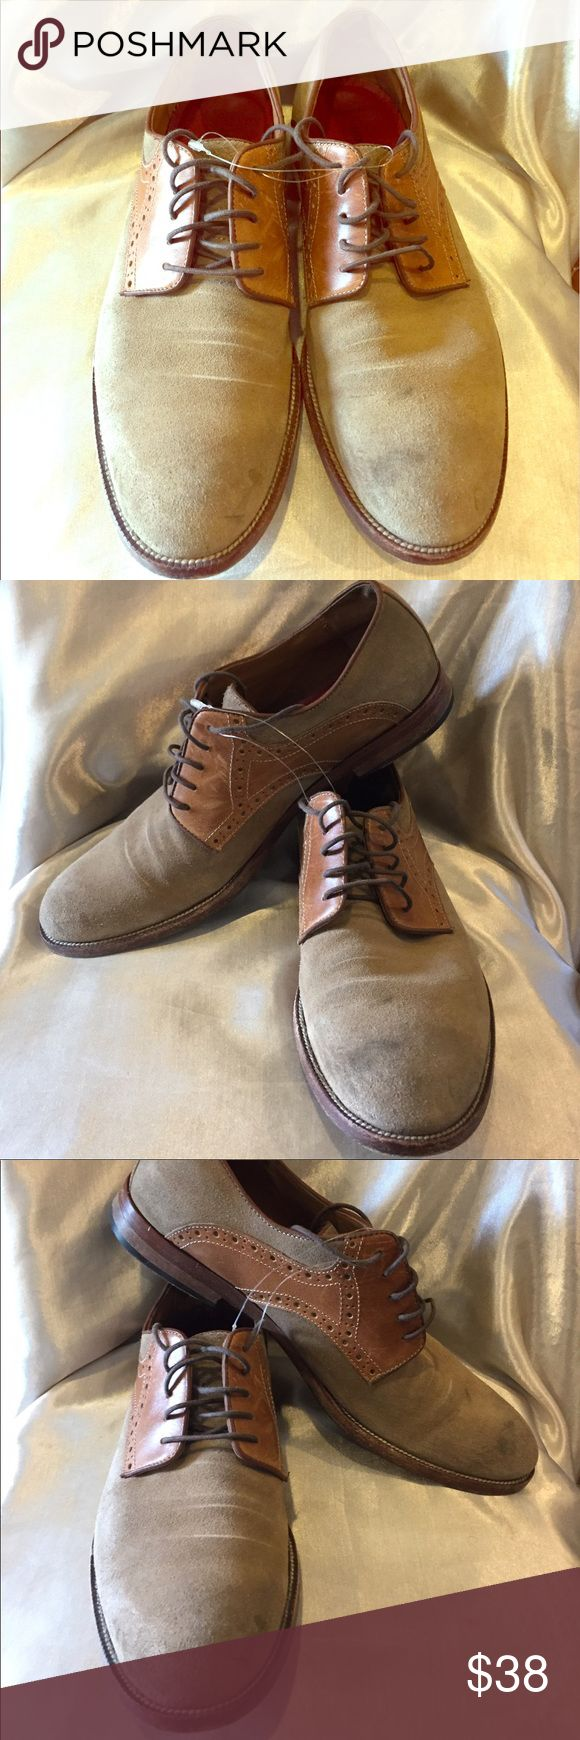 Johnson and Murphy tan and brown suede oxfords  Johnson and Murphy Tan And Brown Suede oxfords  size 10.5 need cleaning lots of life Johnston & Murphy Shoes Oxfords & Derbys